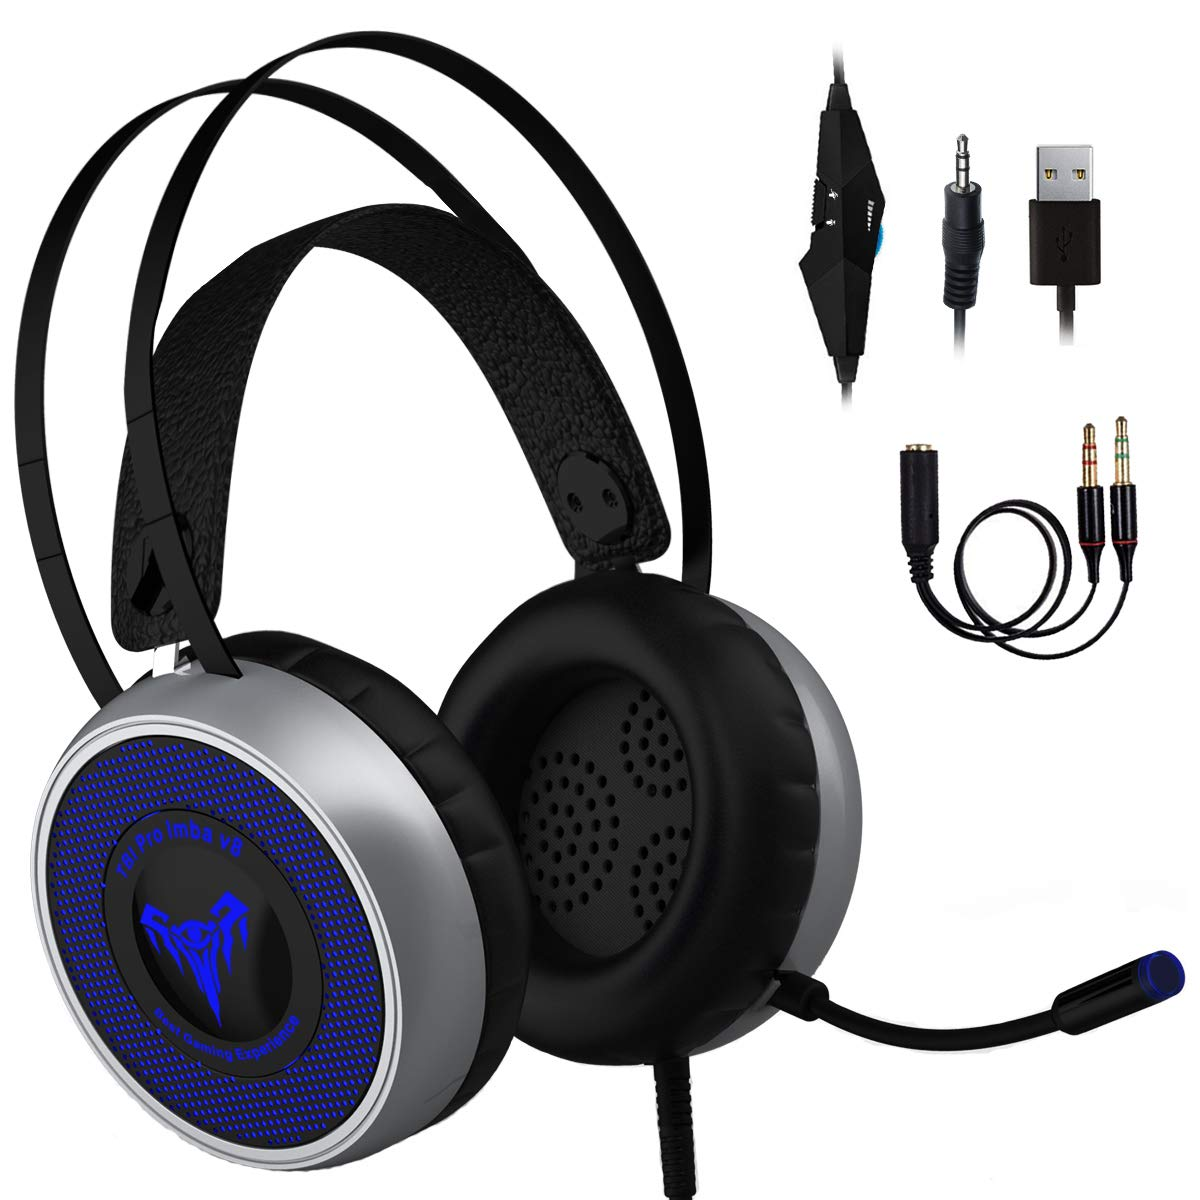 [Newest 2019] Gaming Headset for Xbox One, S, PS4, PC with LED Soft Breathing Earmuffs, Adjustable Microphone, Comfortable Mute & Volume Control, 3.5mm Adapter for Laptop, PS3, Nintendo by TBI Pro (Image #1)